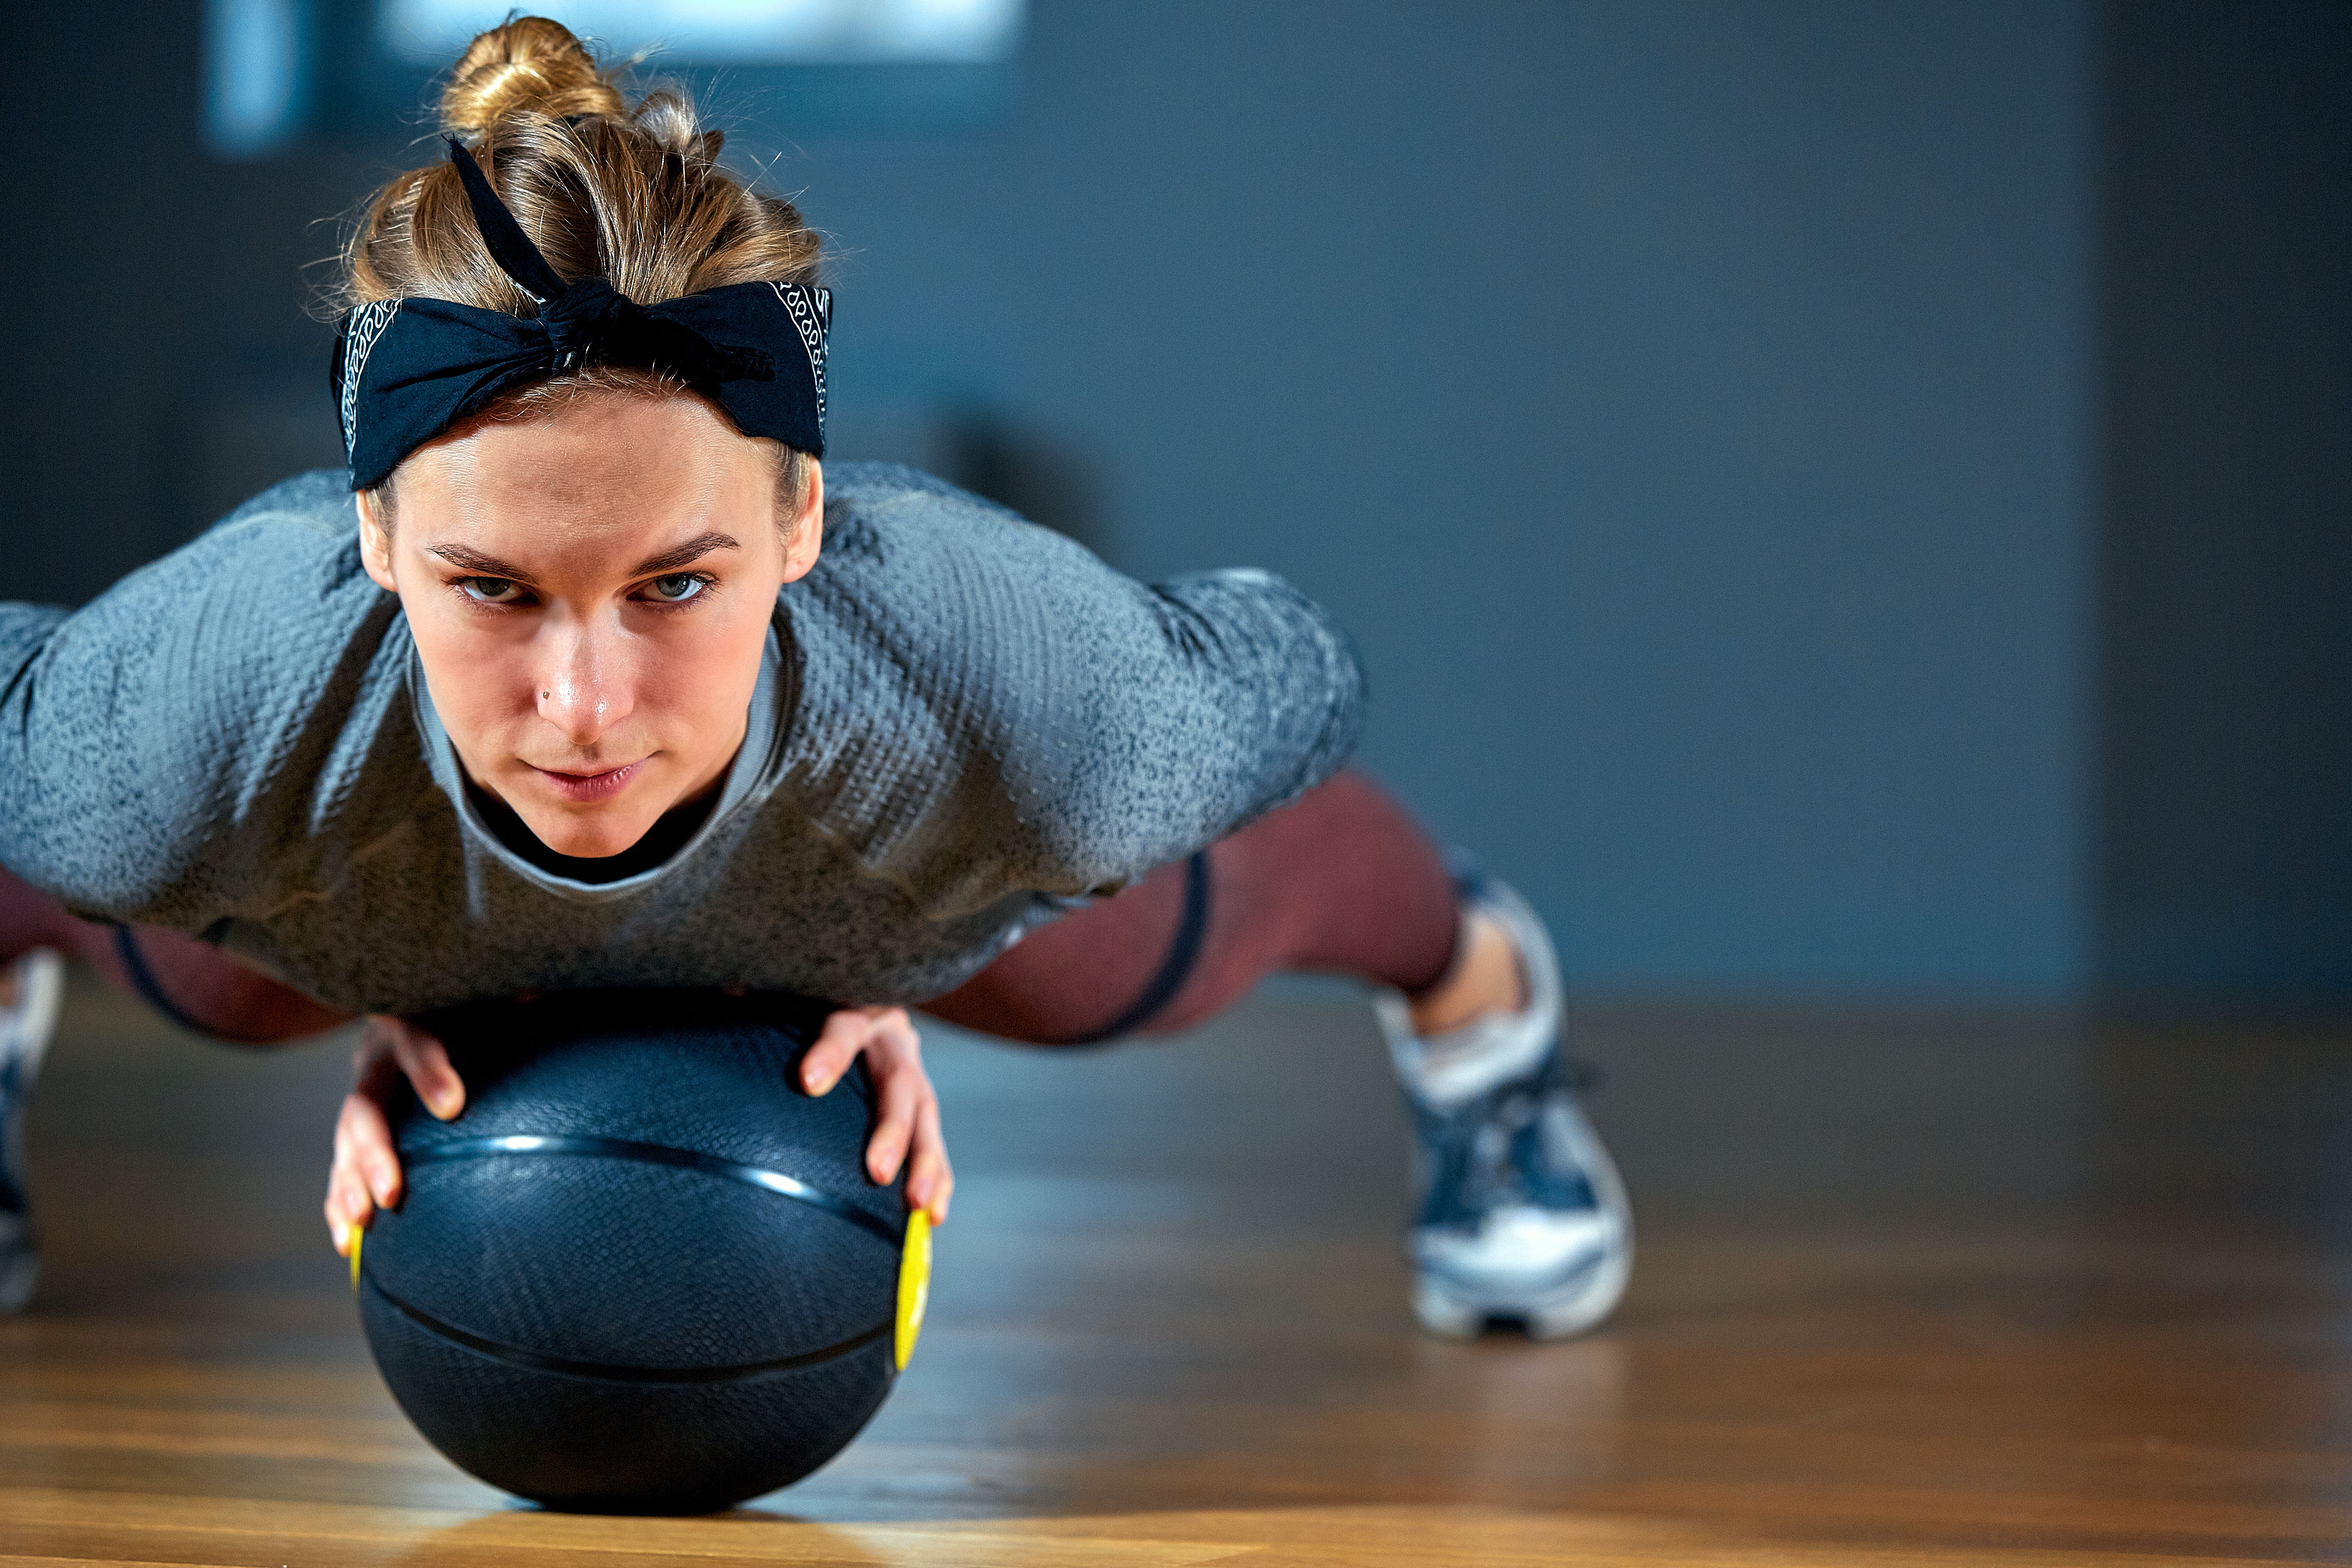 High-Intensity Activity in Adolescence May Help Prevent Osteoporosis: